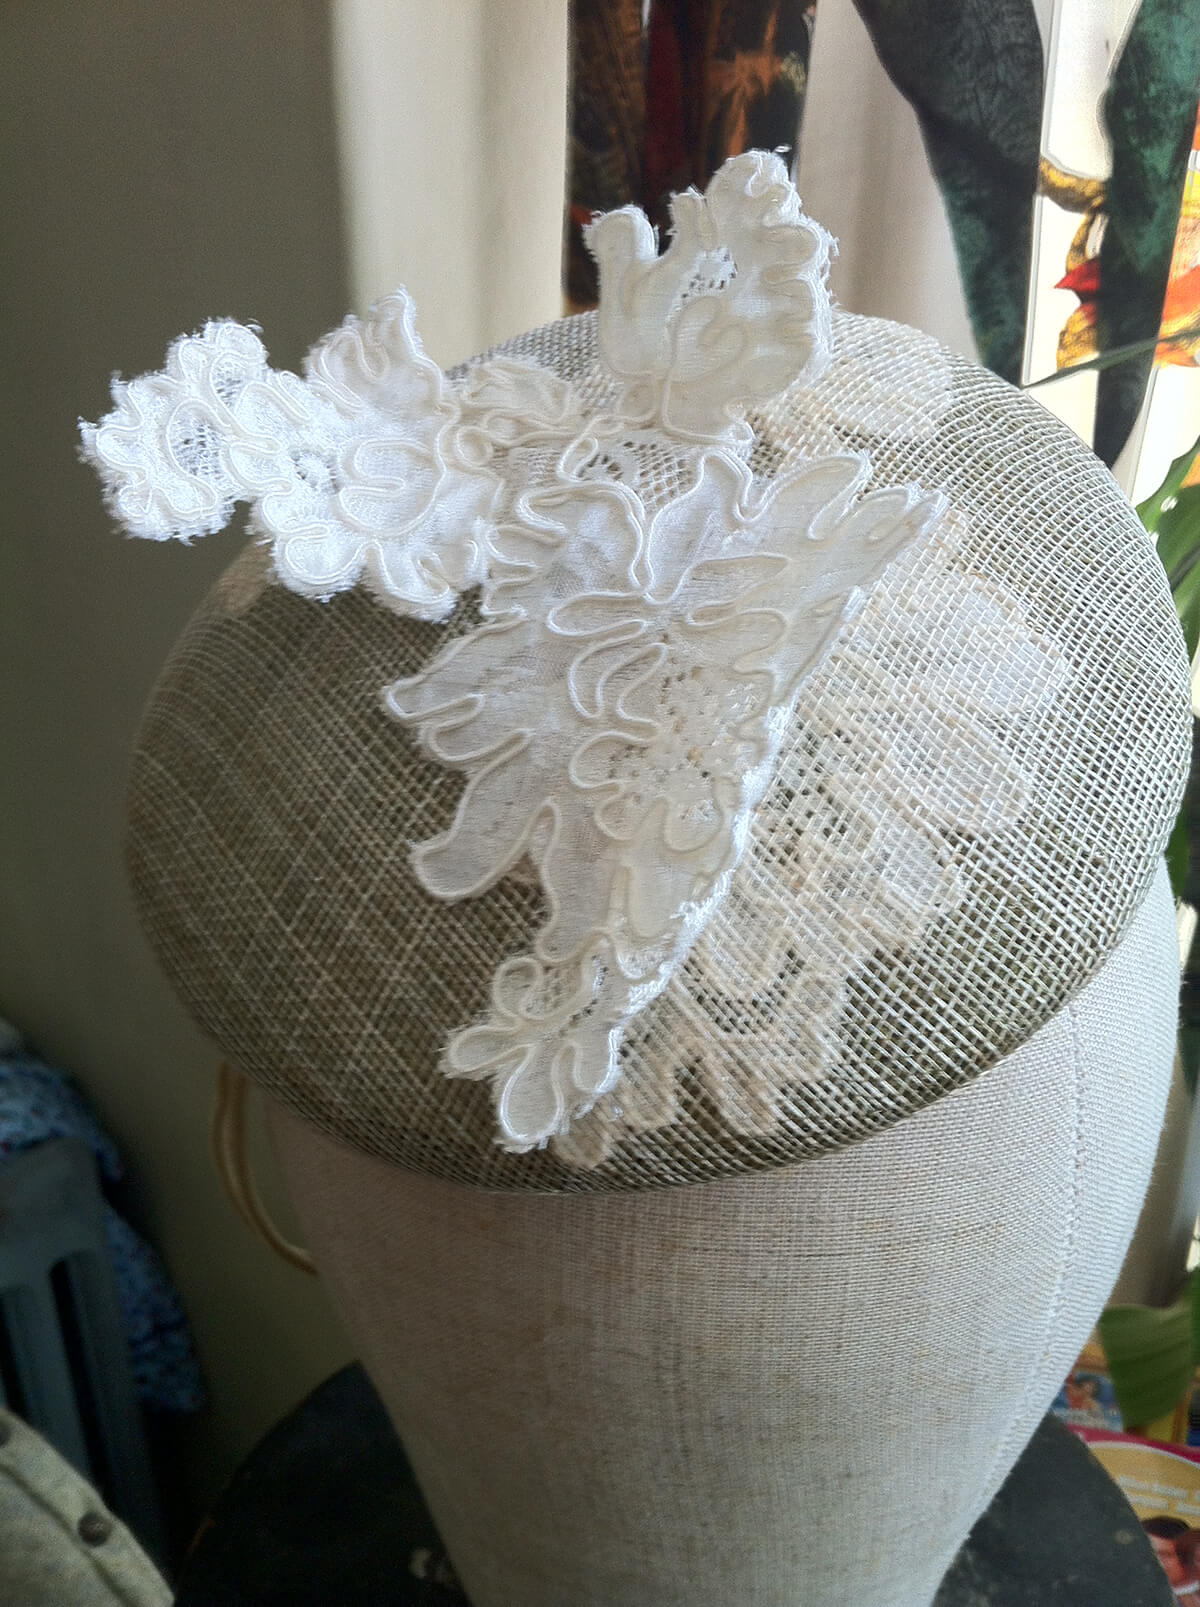 Lace work bespoke hat.